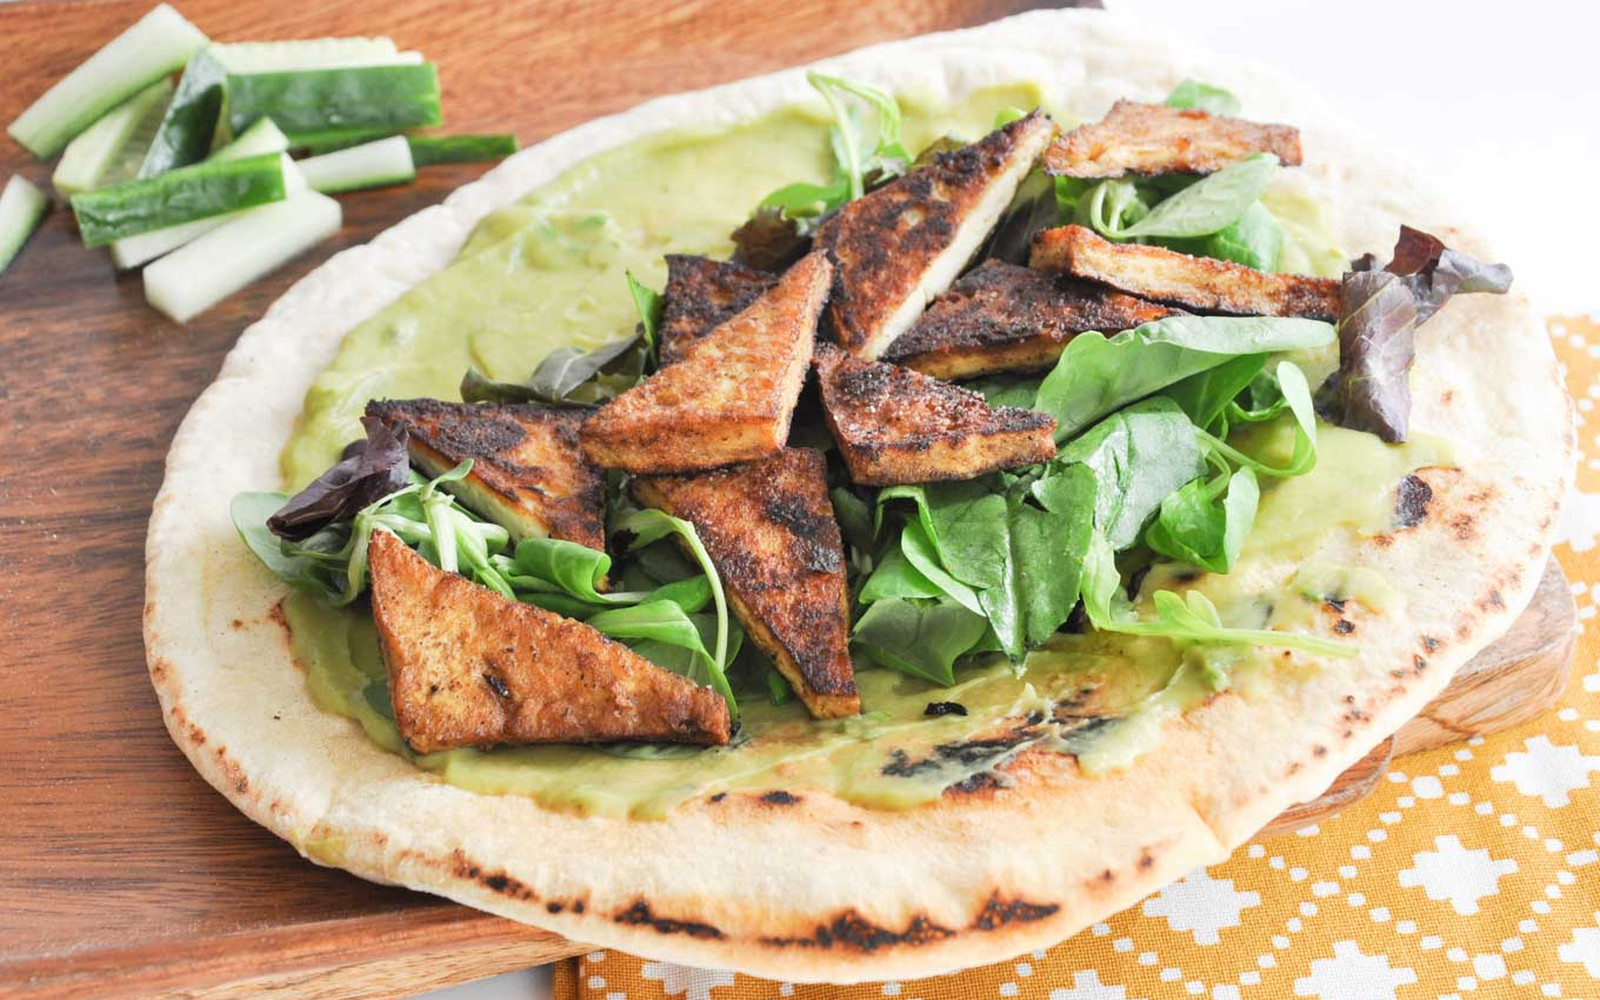 Crispy Curry Tofu Wrap With Homemade Tortillas and Avocado Mayo [Vegan]